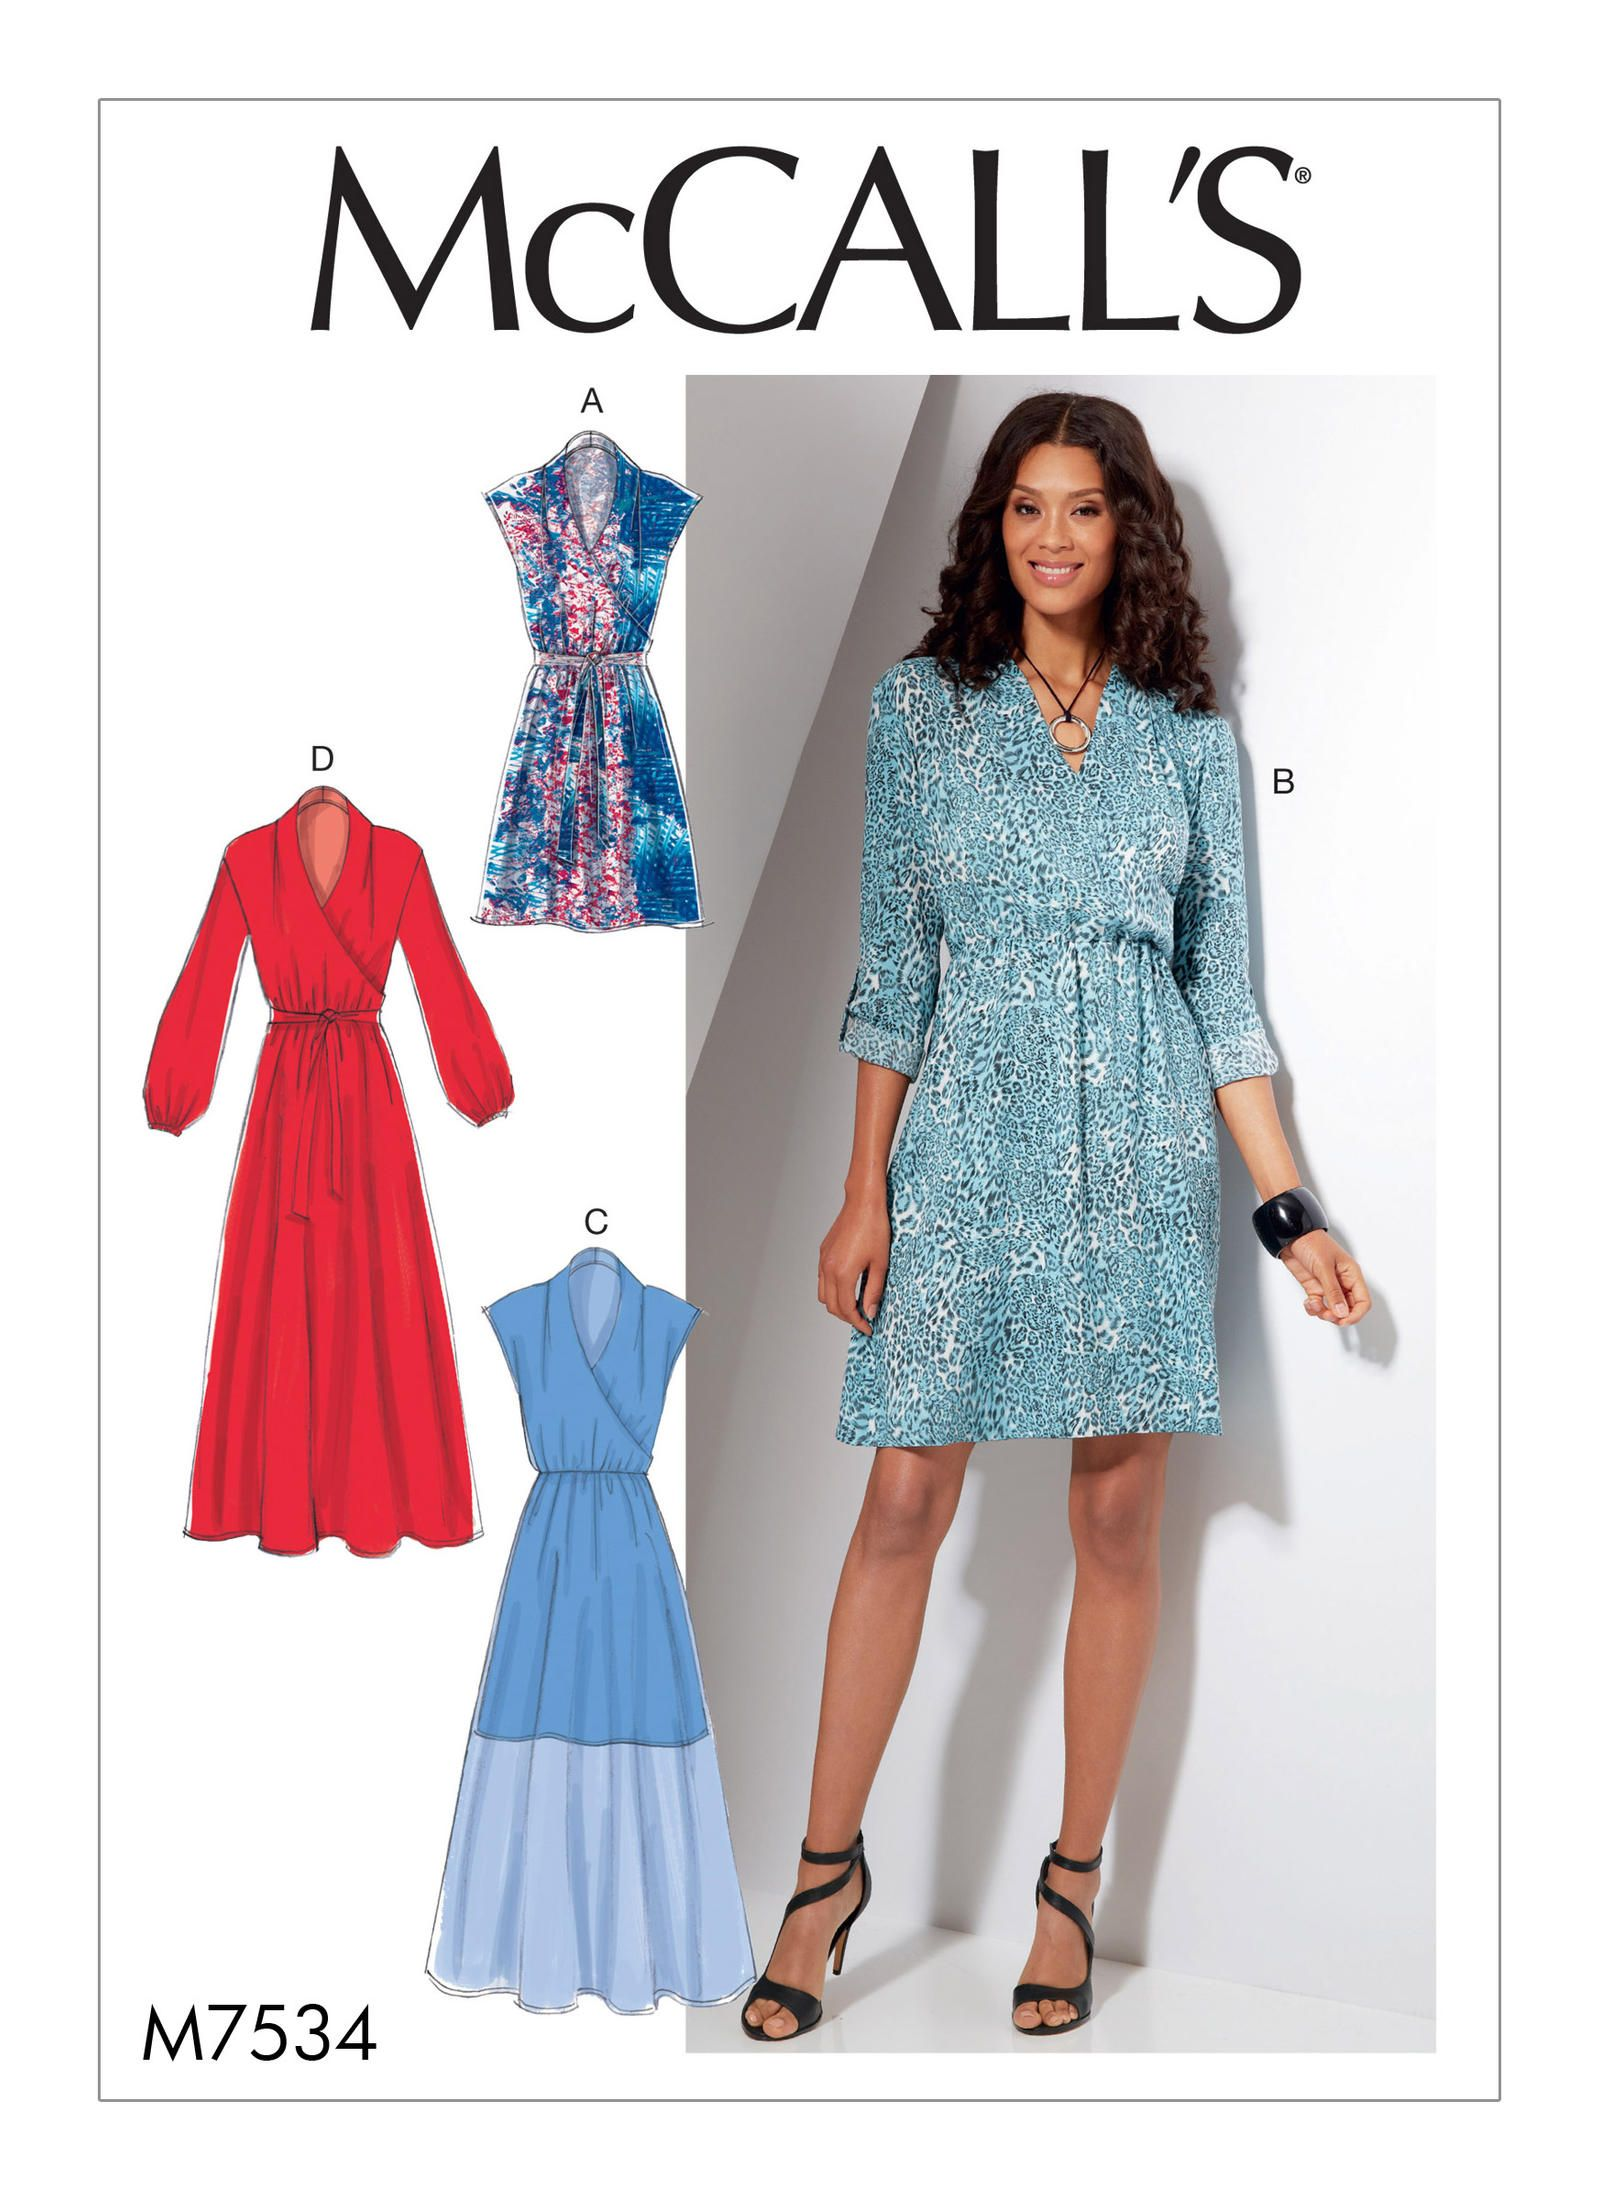 McCall\'s 7534 Misses\' Mock-Wrap Dresses sewing pattern | Sewing ...